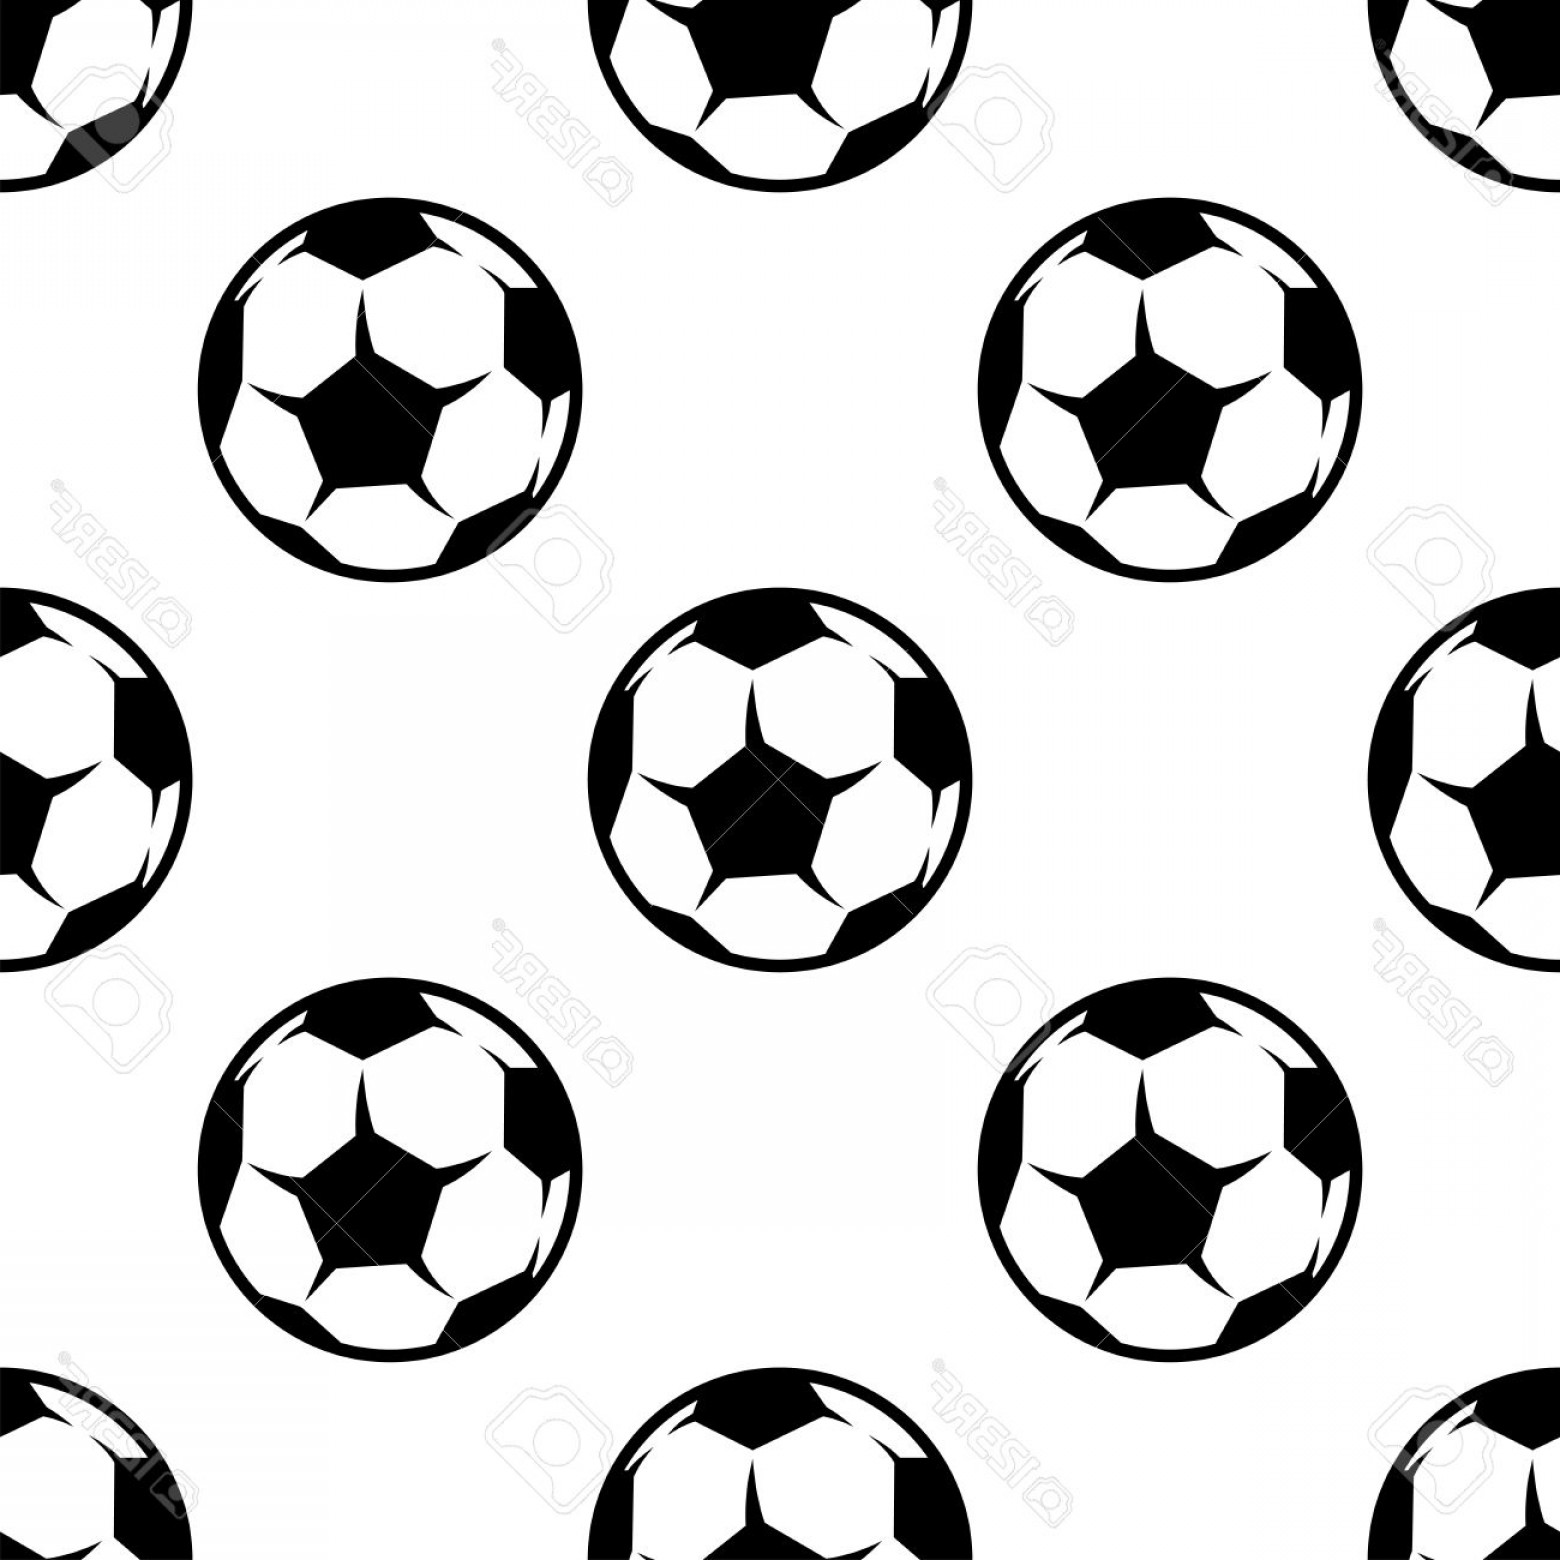 Football Vector Wallpaper: Photostock Vector Soccer Or Football Seamless Pattern With Sports Balls For Background Wallpaper Or Textile Design